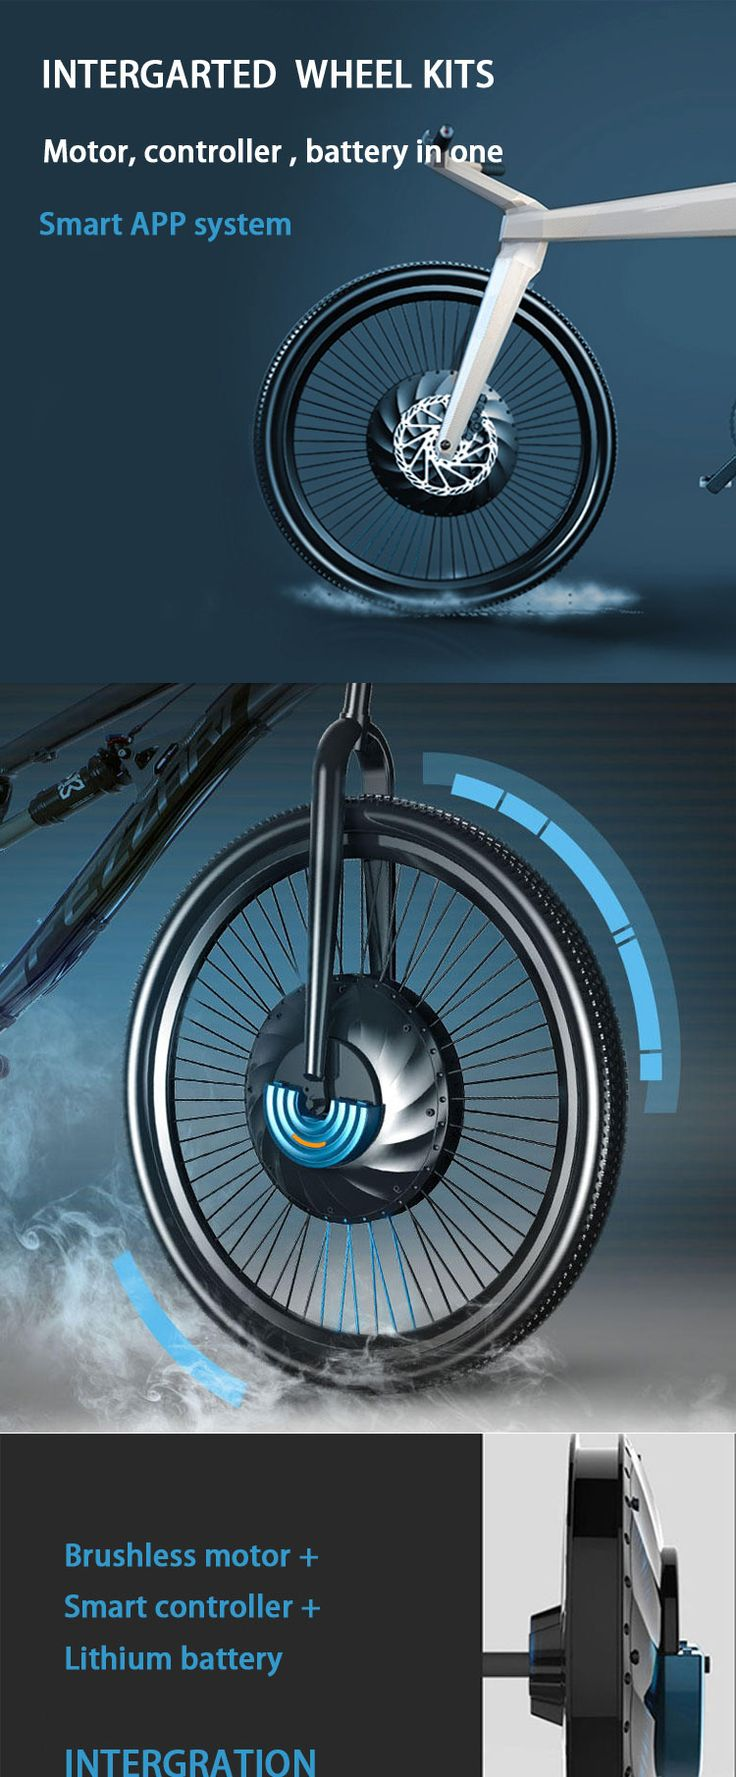 All-in-one electric bike kits-imortorv_ELECYCLE-Professional manufacturer of electric bicycle